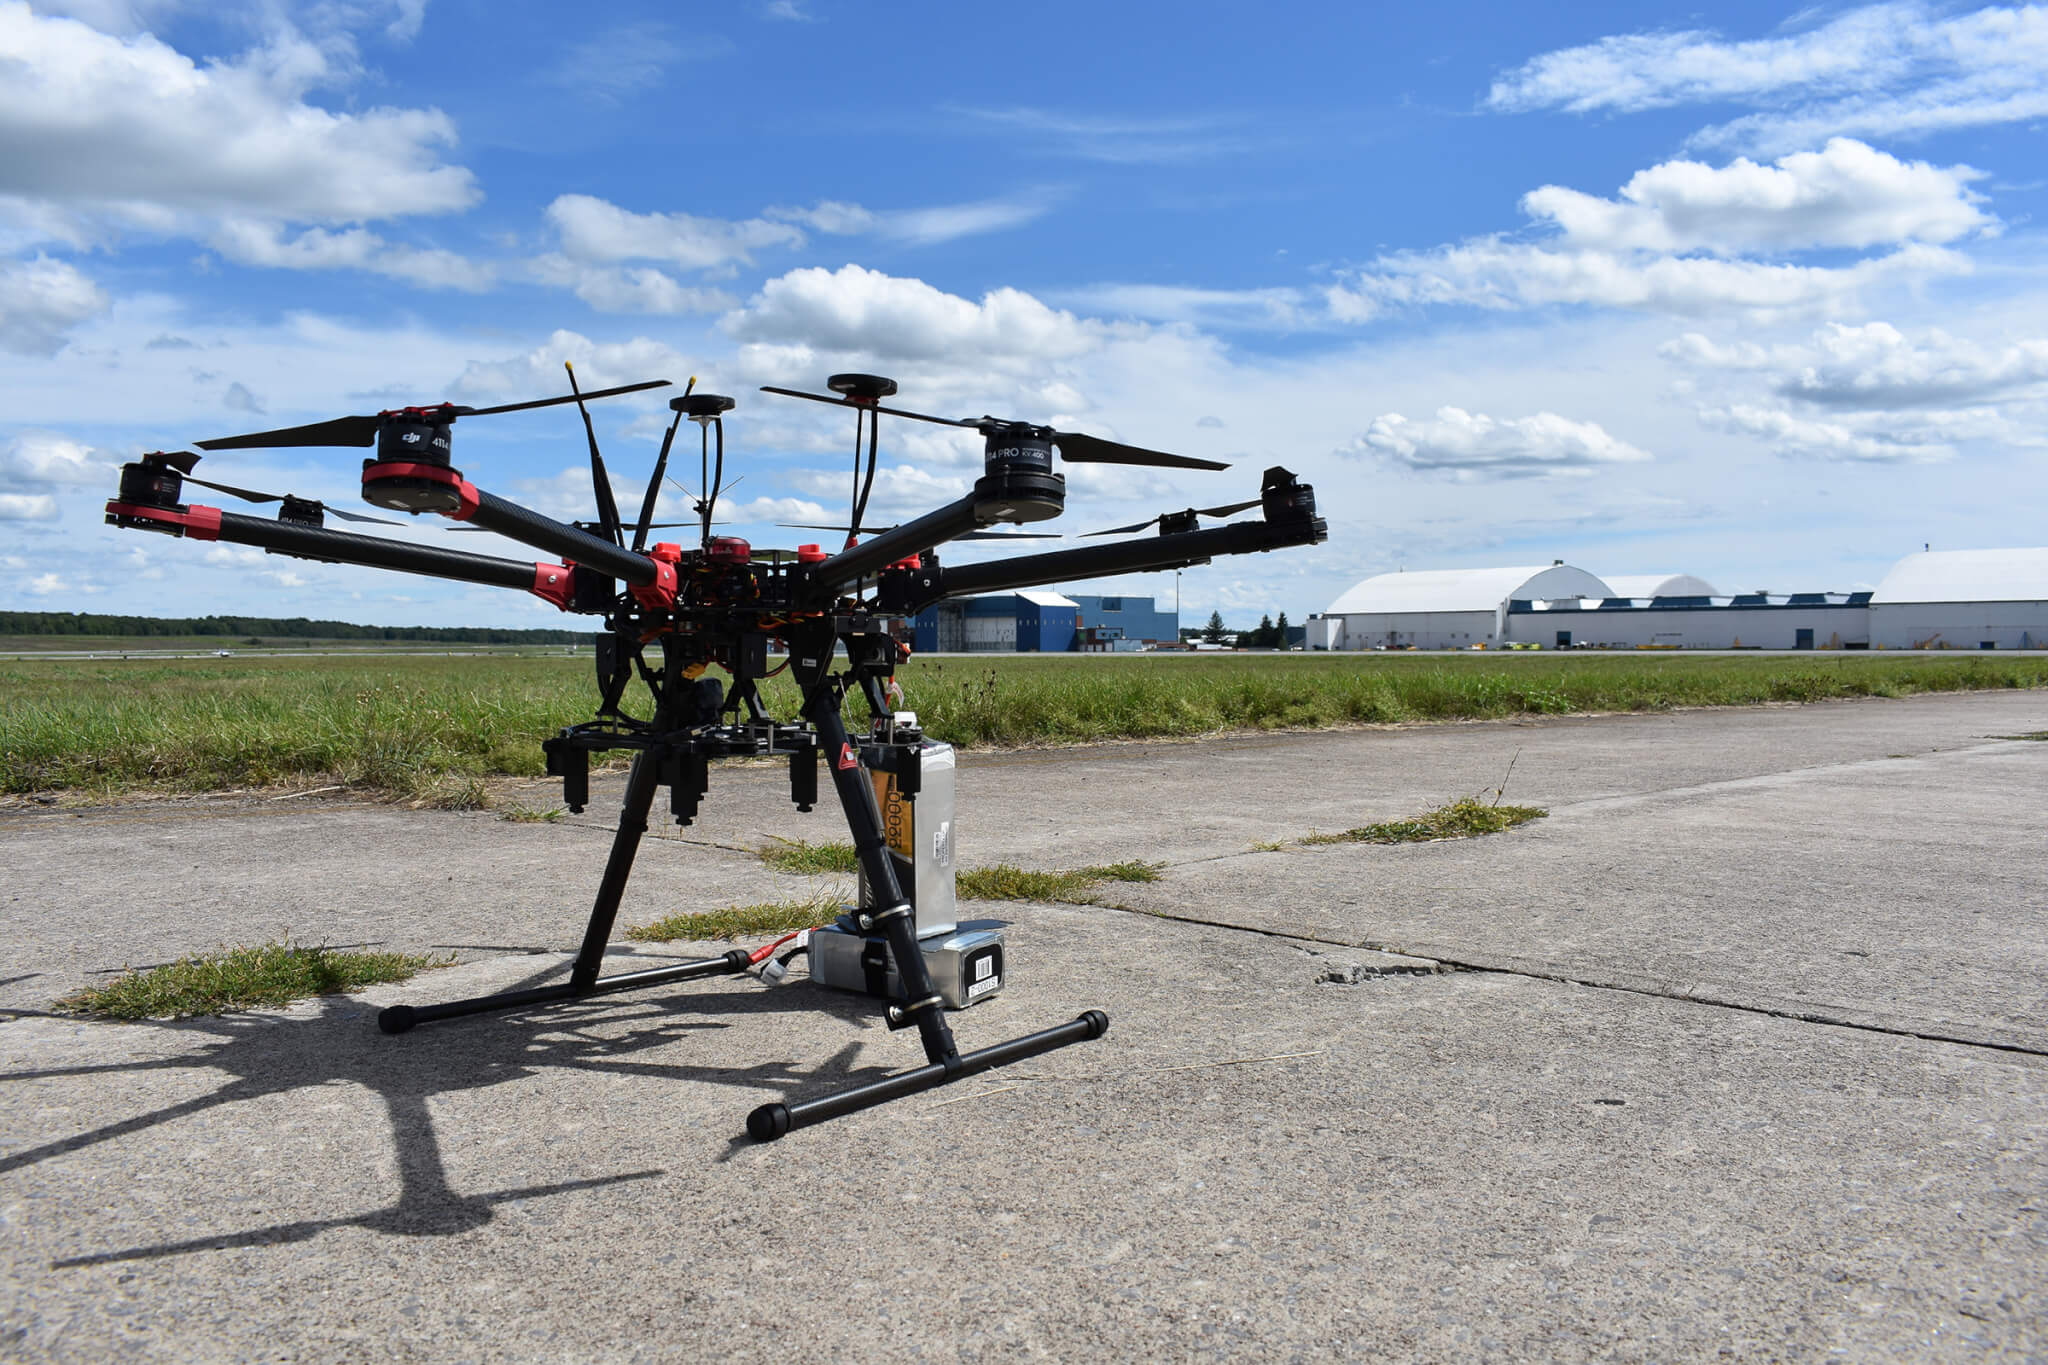 NUAIR Drone at NY UAS Test Site